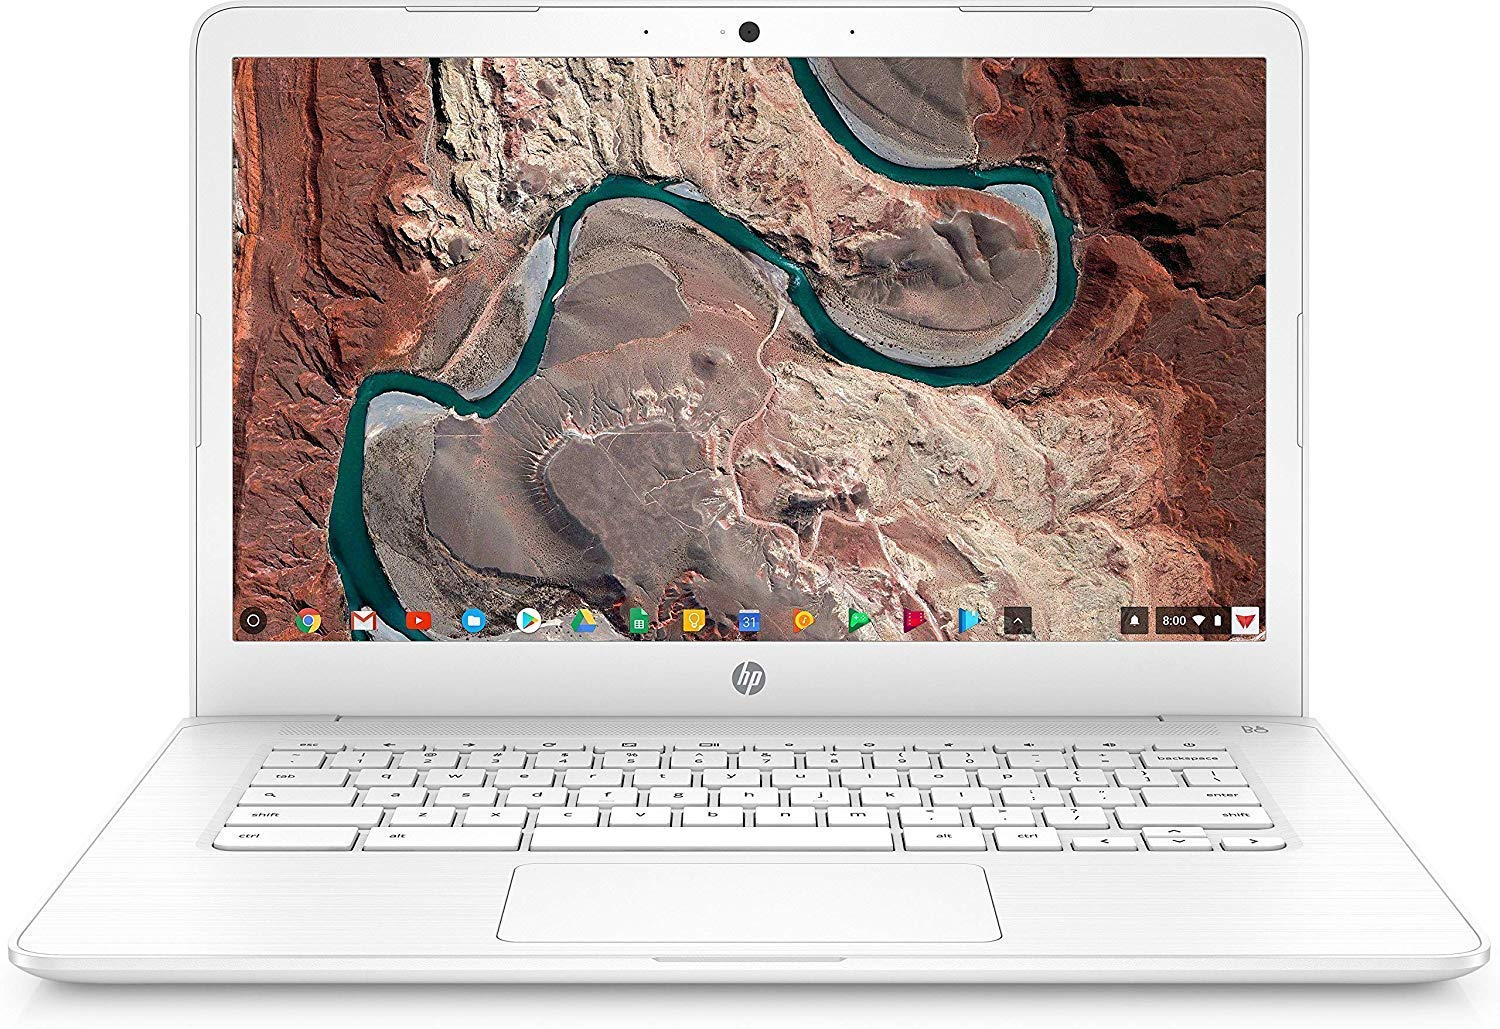 HP Chromebook 14, 14in Full HD Display, Intel Celeron N3350, Intel HD Graphics 500, 32GB eMMC, 4GB SDRAM, B&O Play Audio, Snow White, 14-ca051wm (Renewed)